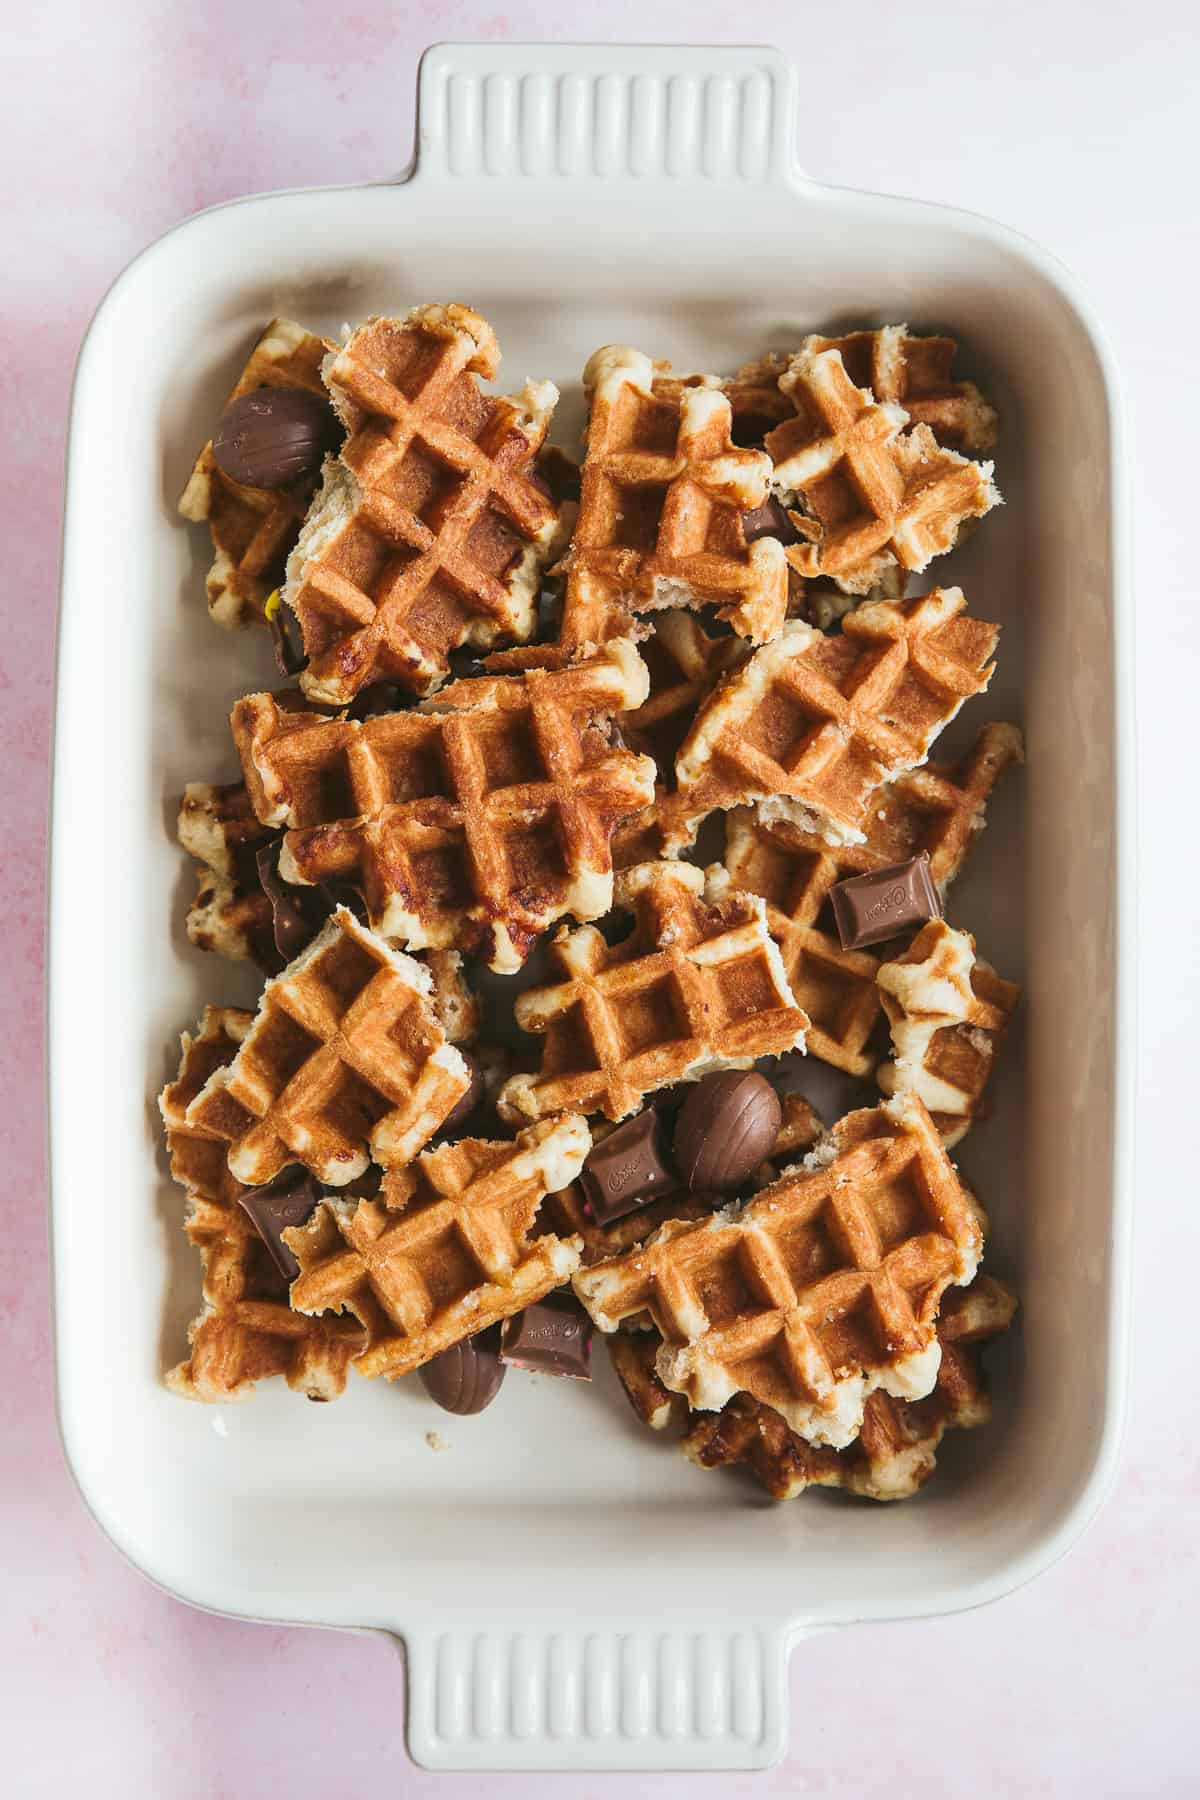 A casserole dish containing layers of broken up pieces of waffle and Easter chocolate.